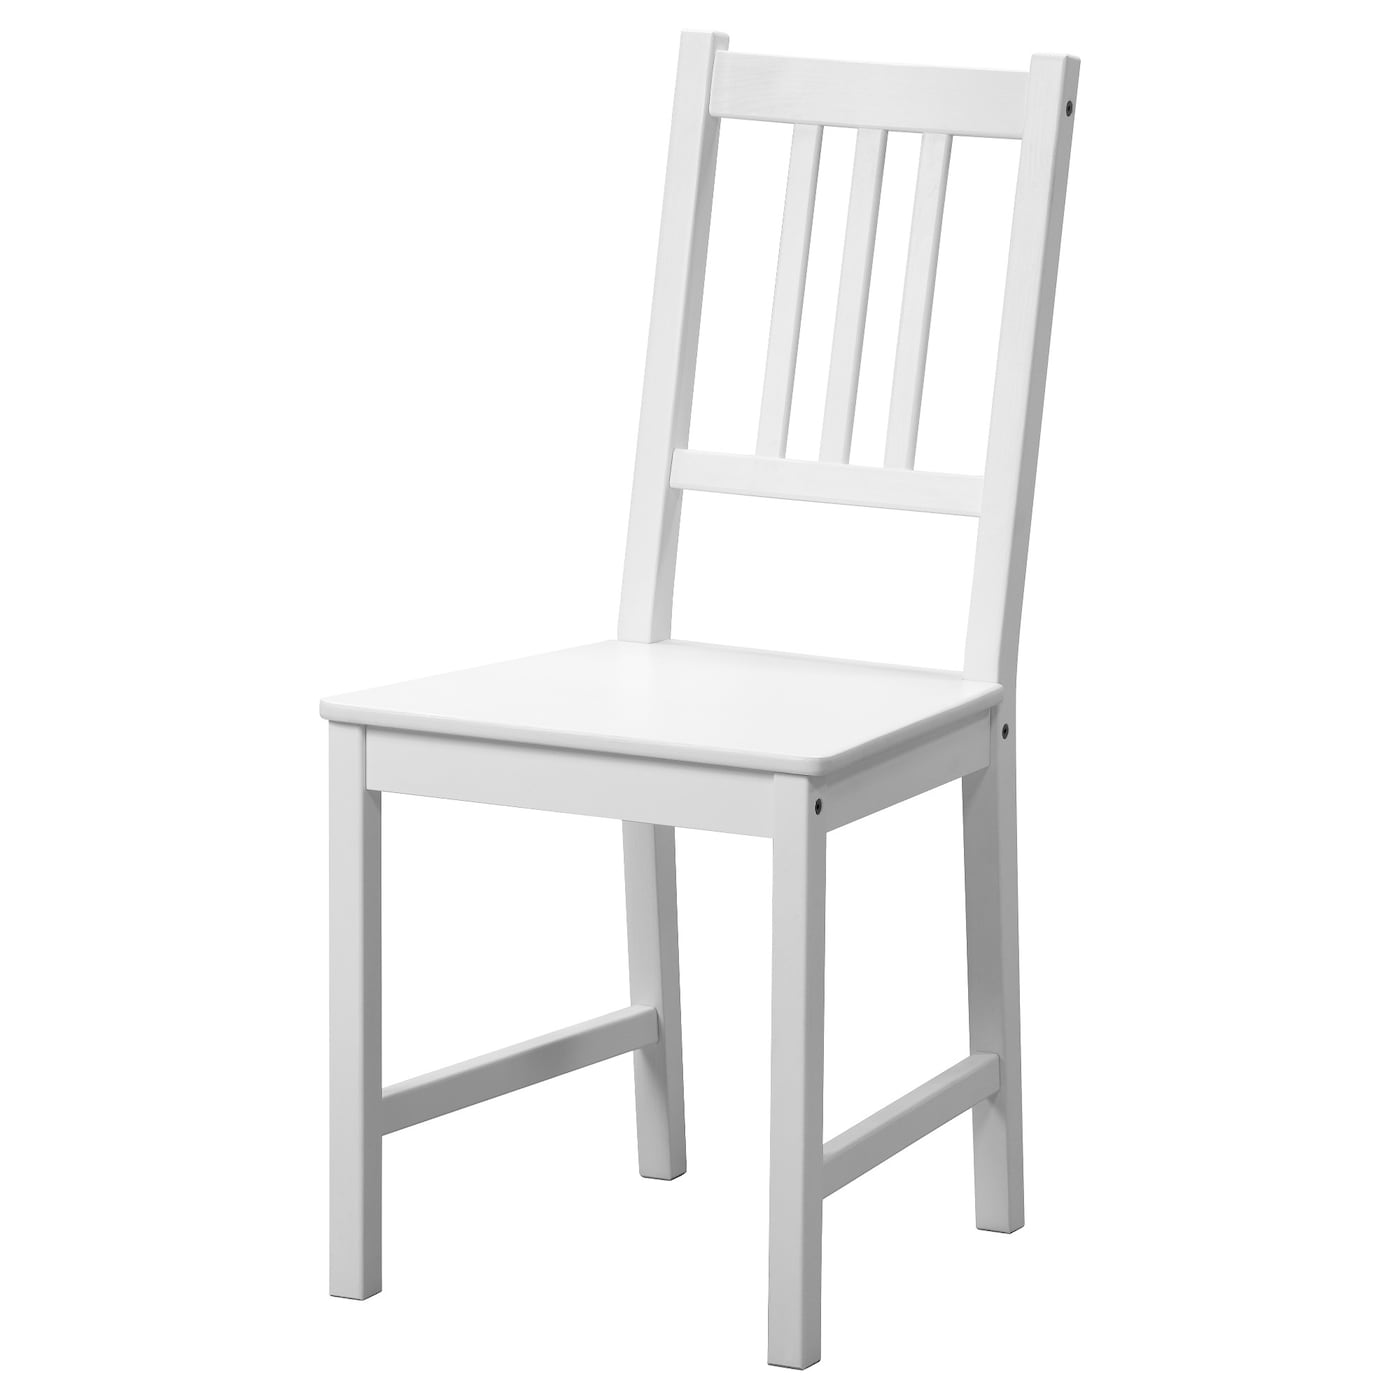 Chairs For The Kitchen: Dining Chairs & Kitchen Chairs